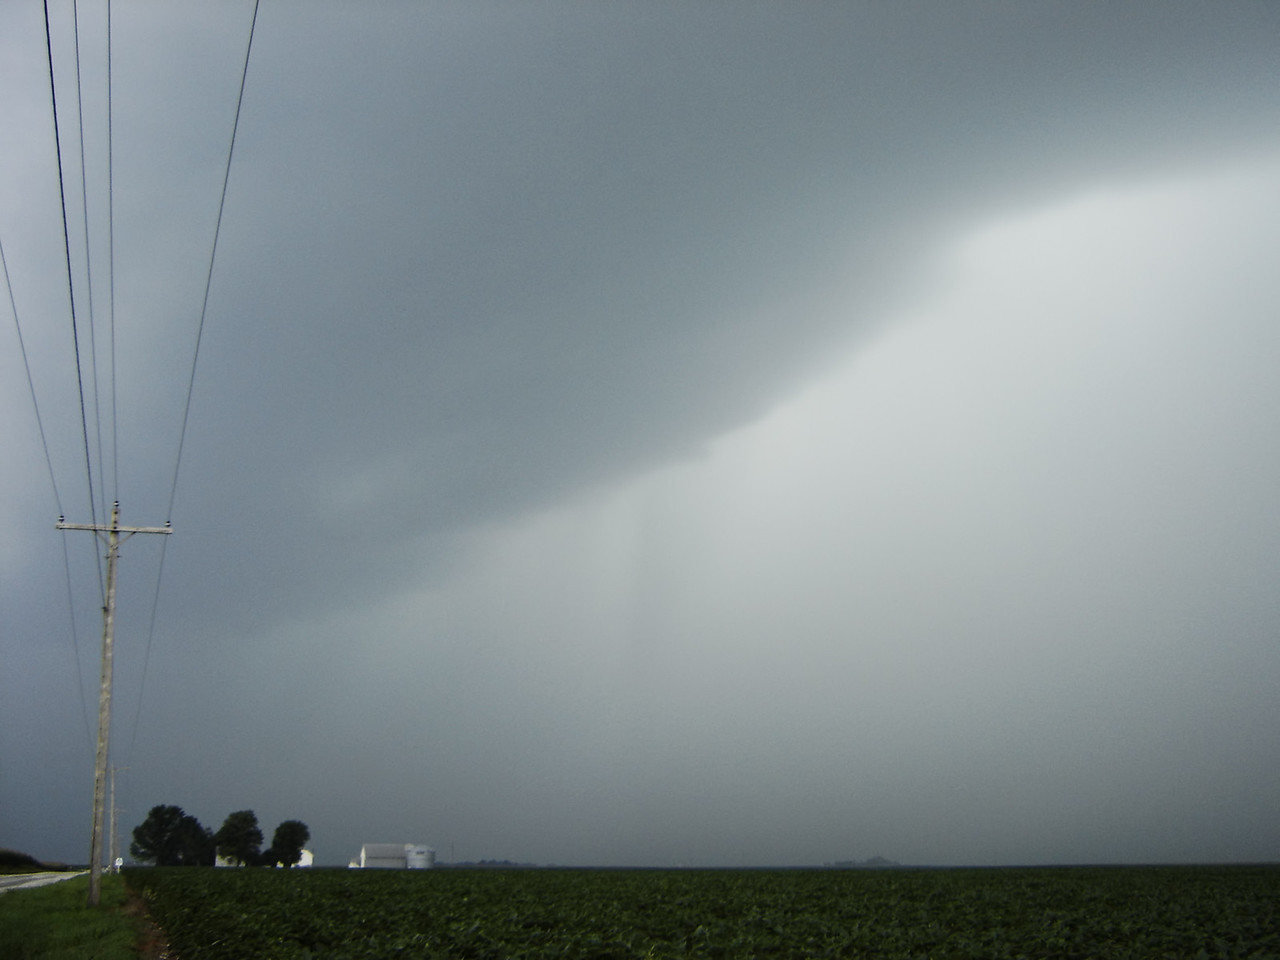 July 26 - W Macon County IL